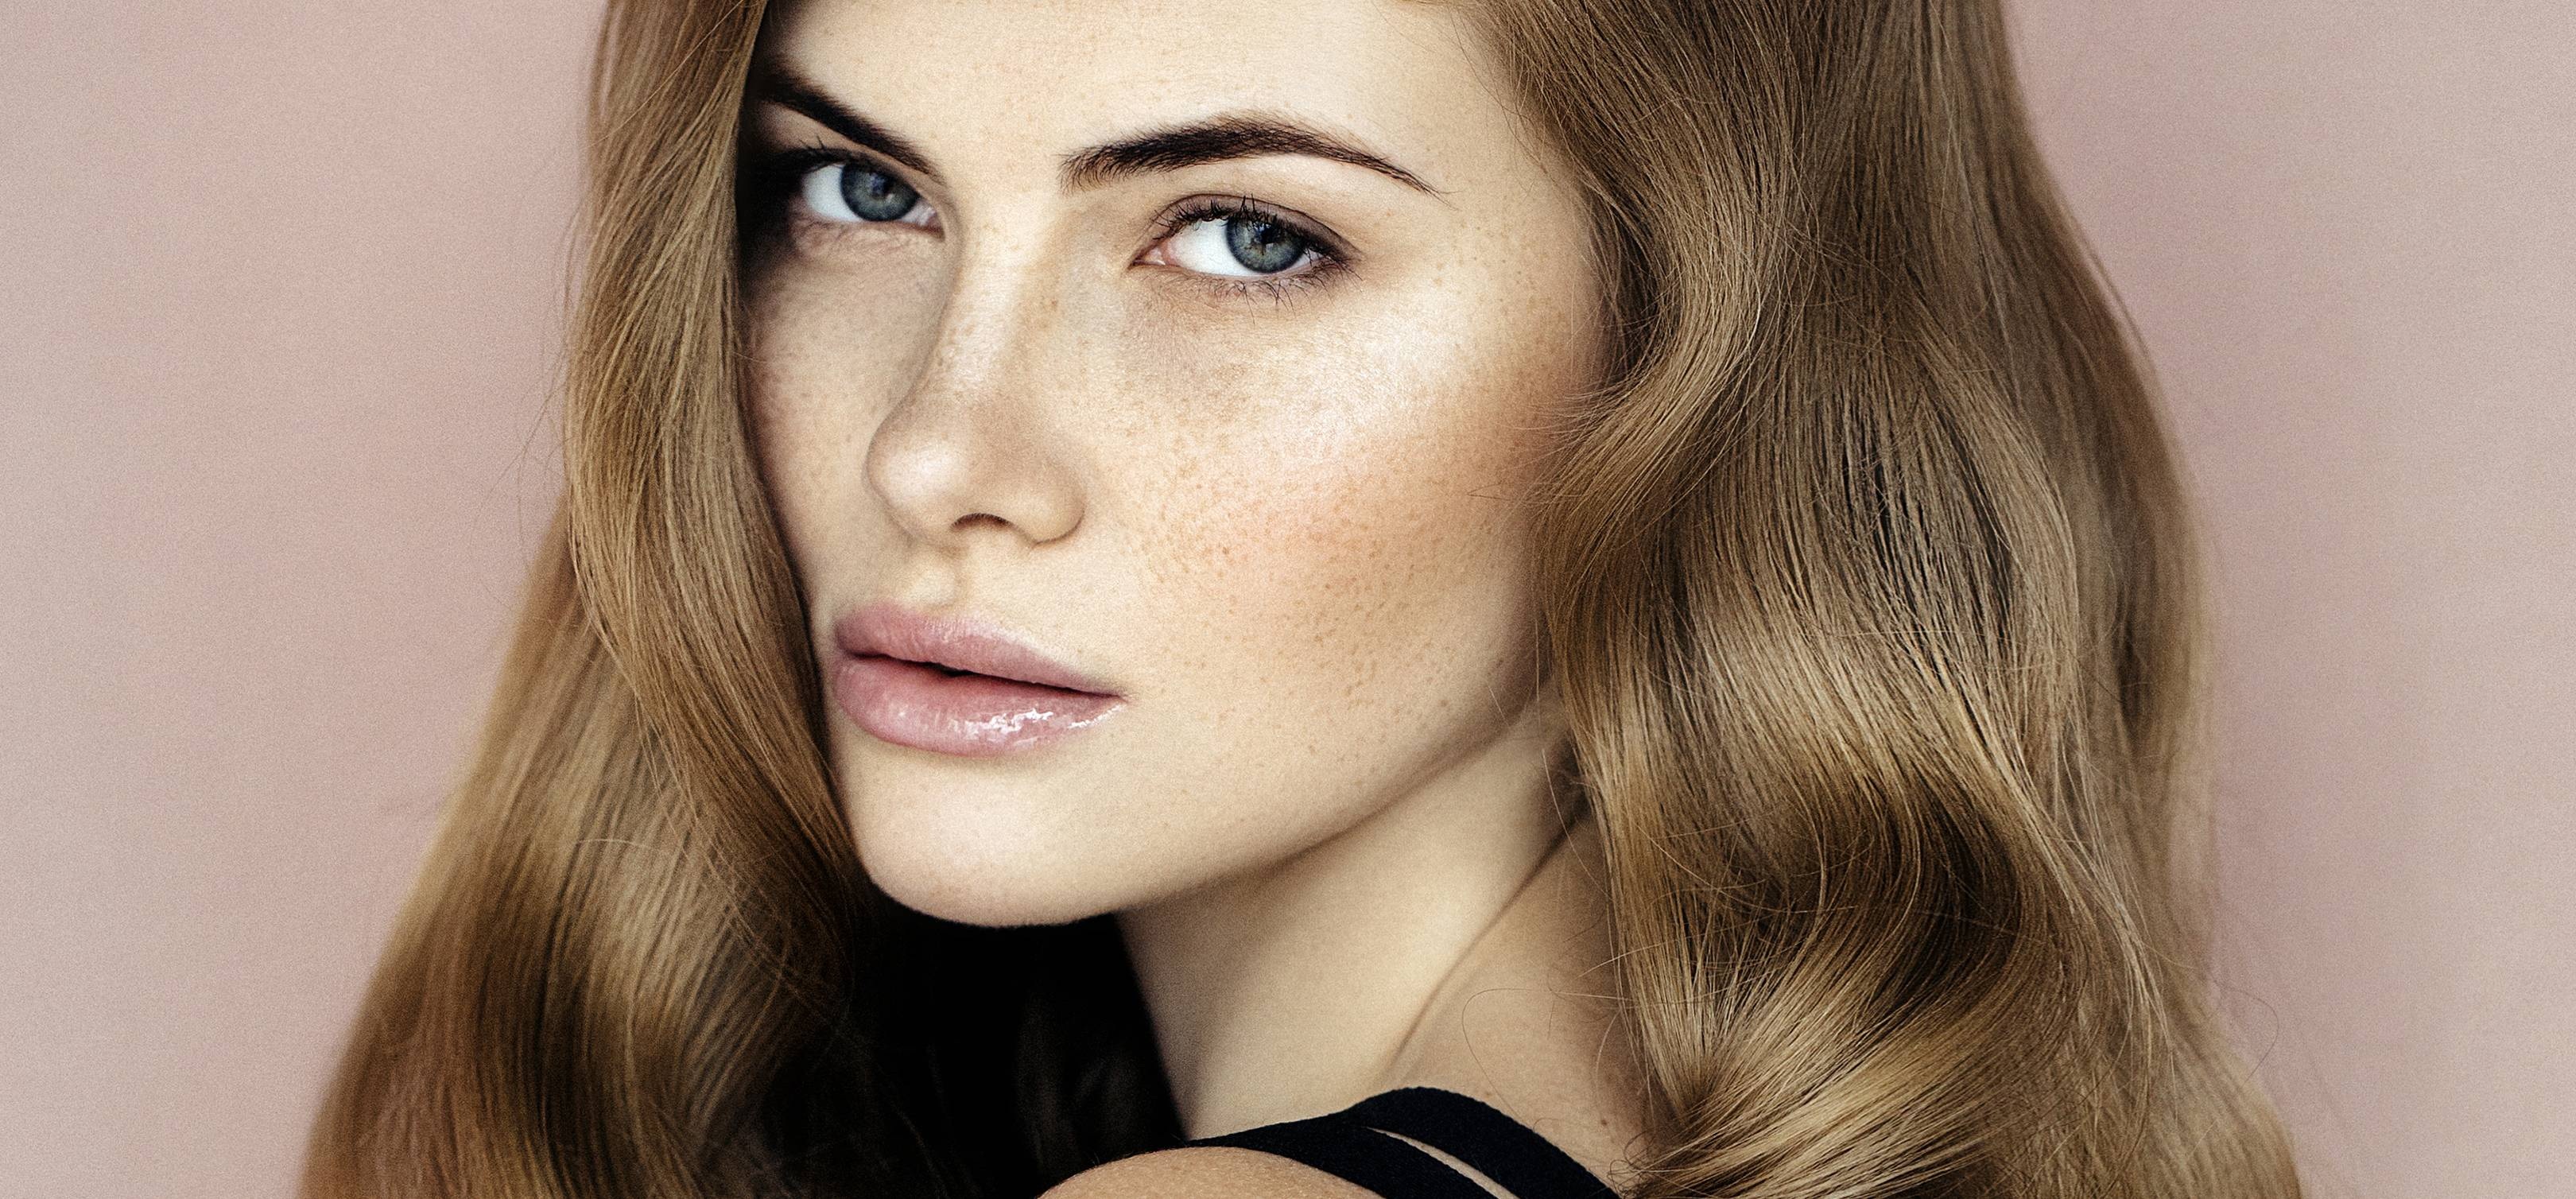 Scalp Acne: What Causes It And How To Treat It | Glamour UK